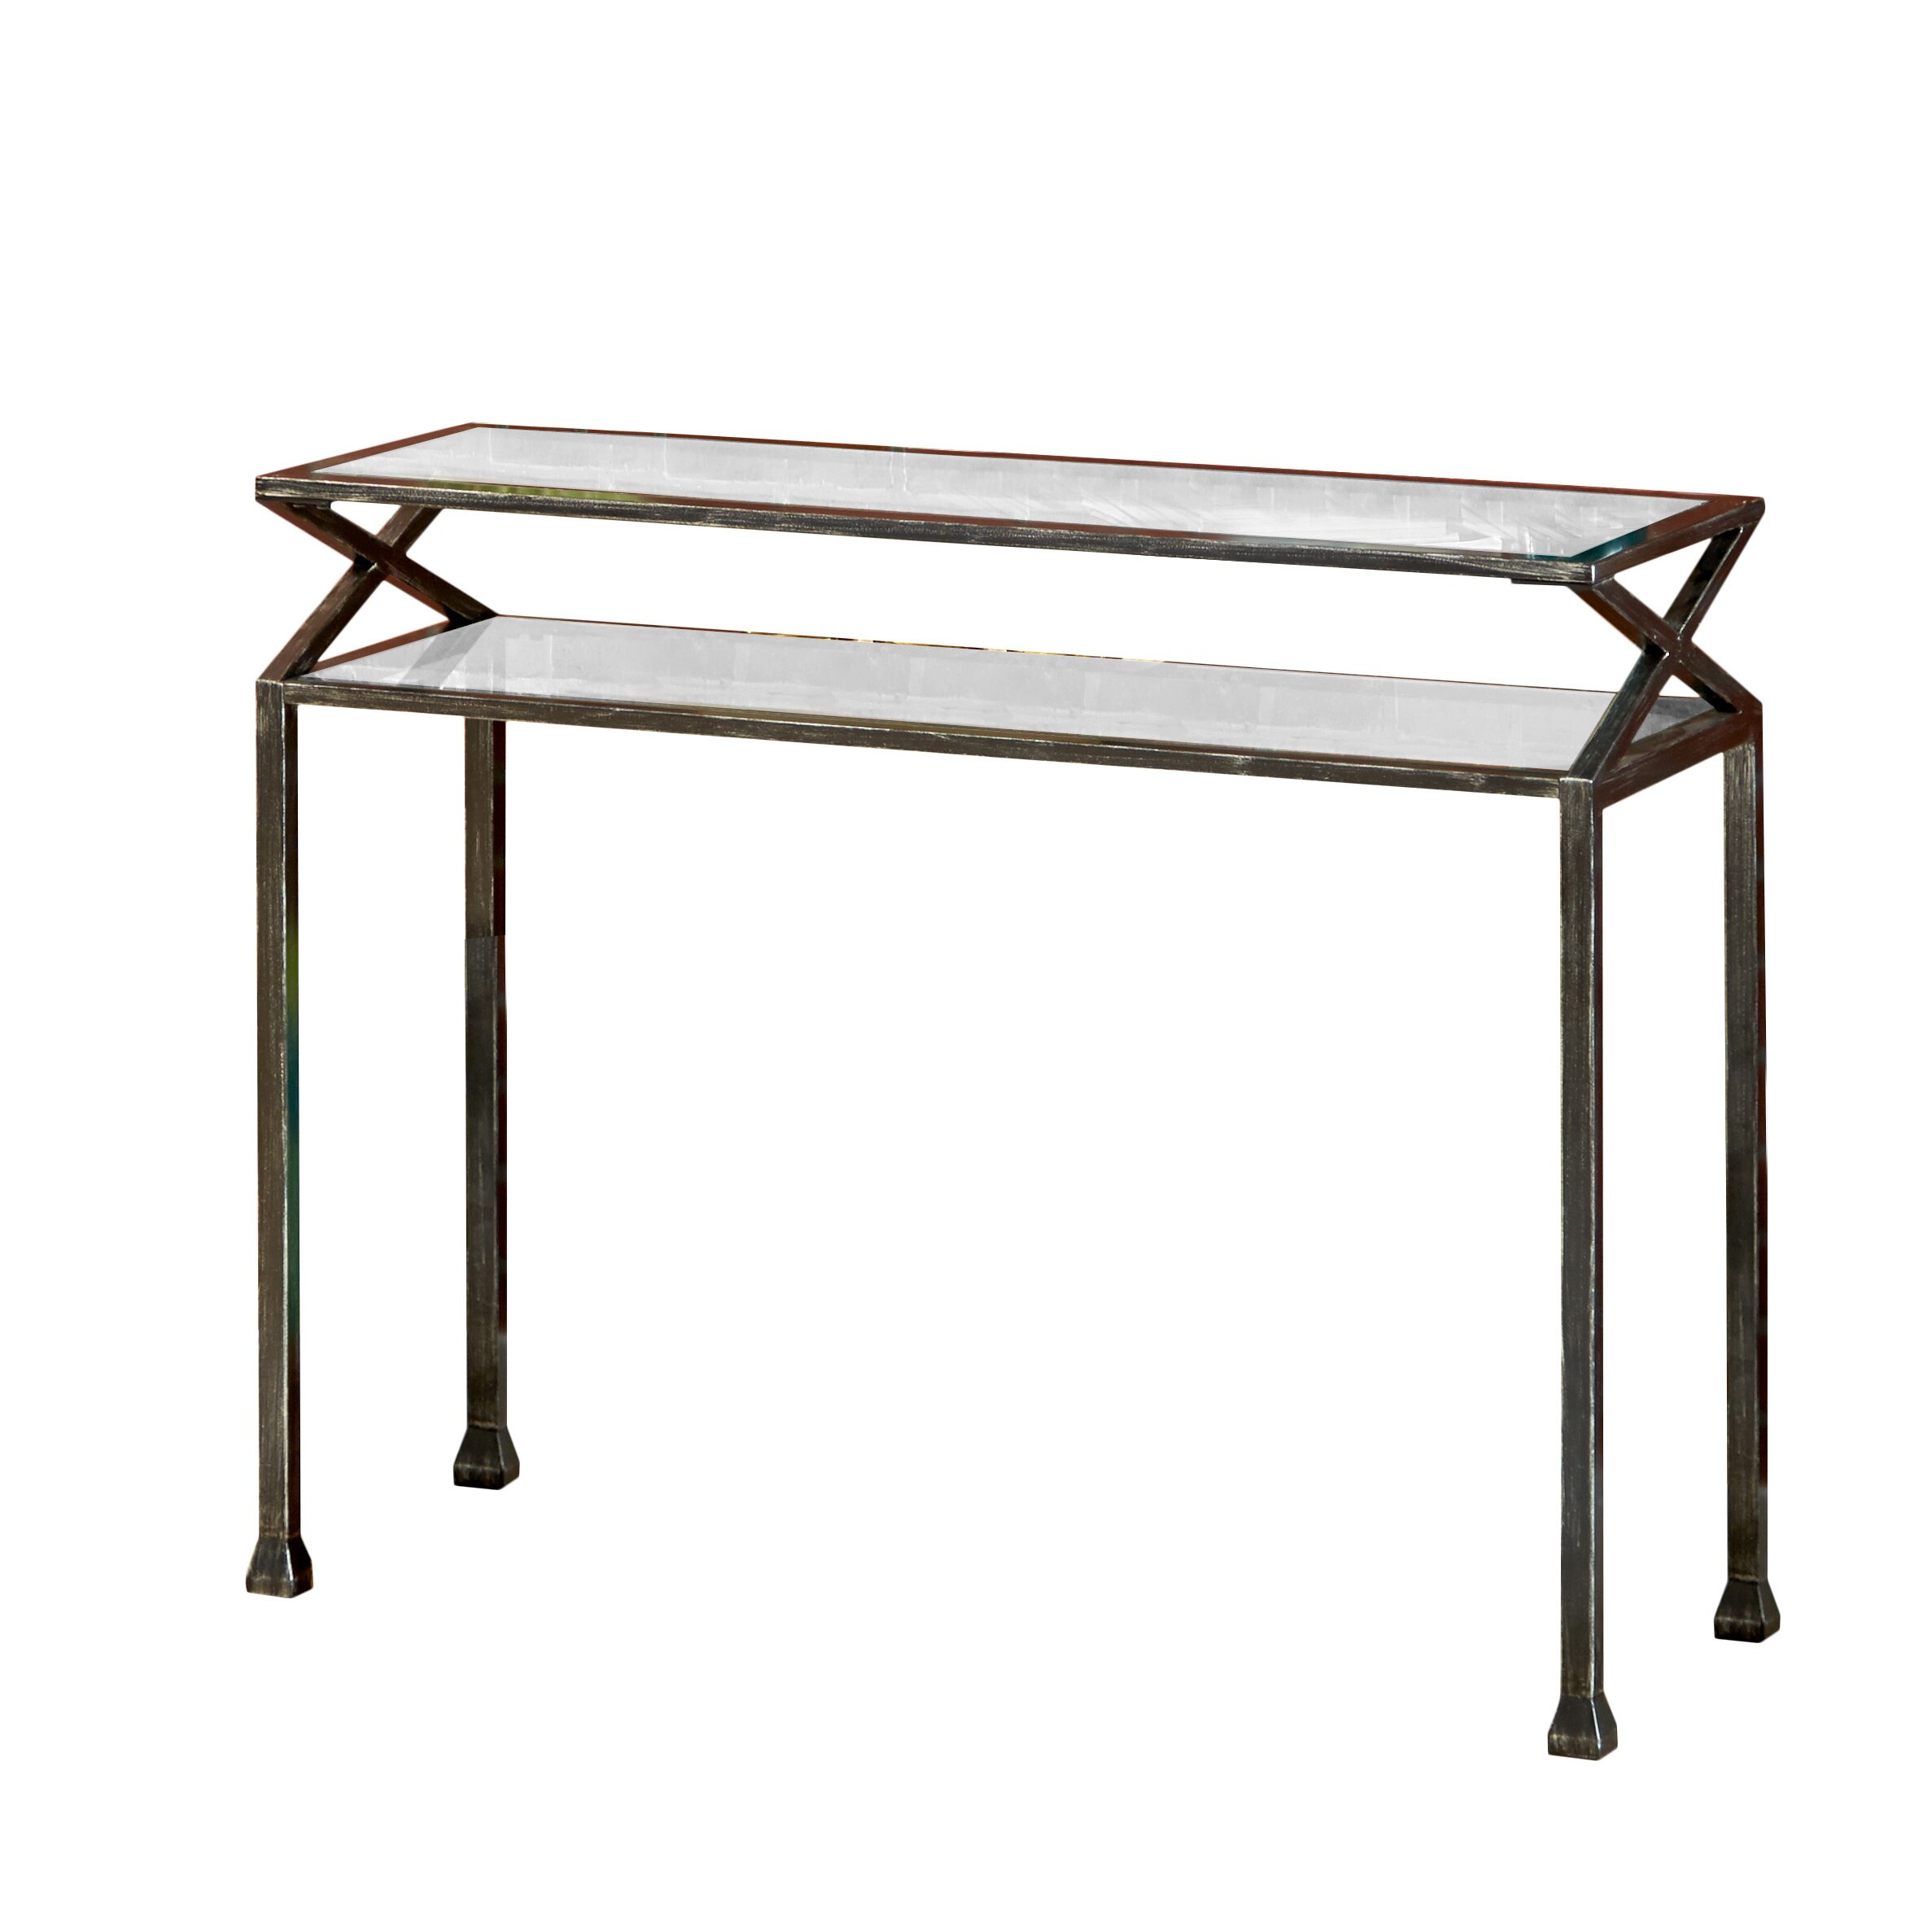 Zipcode design rosetta metal console table reviews for Table console